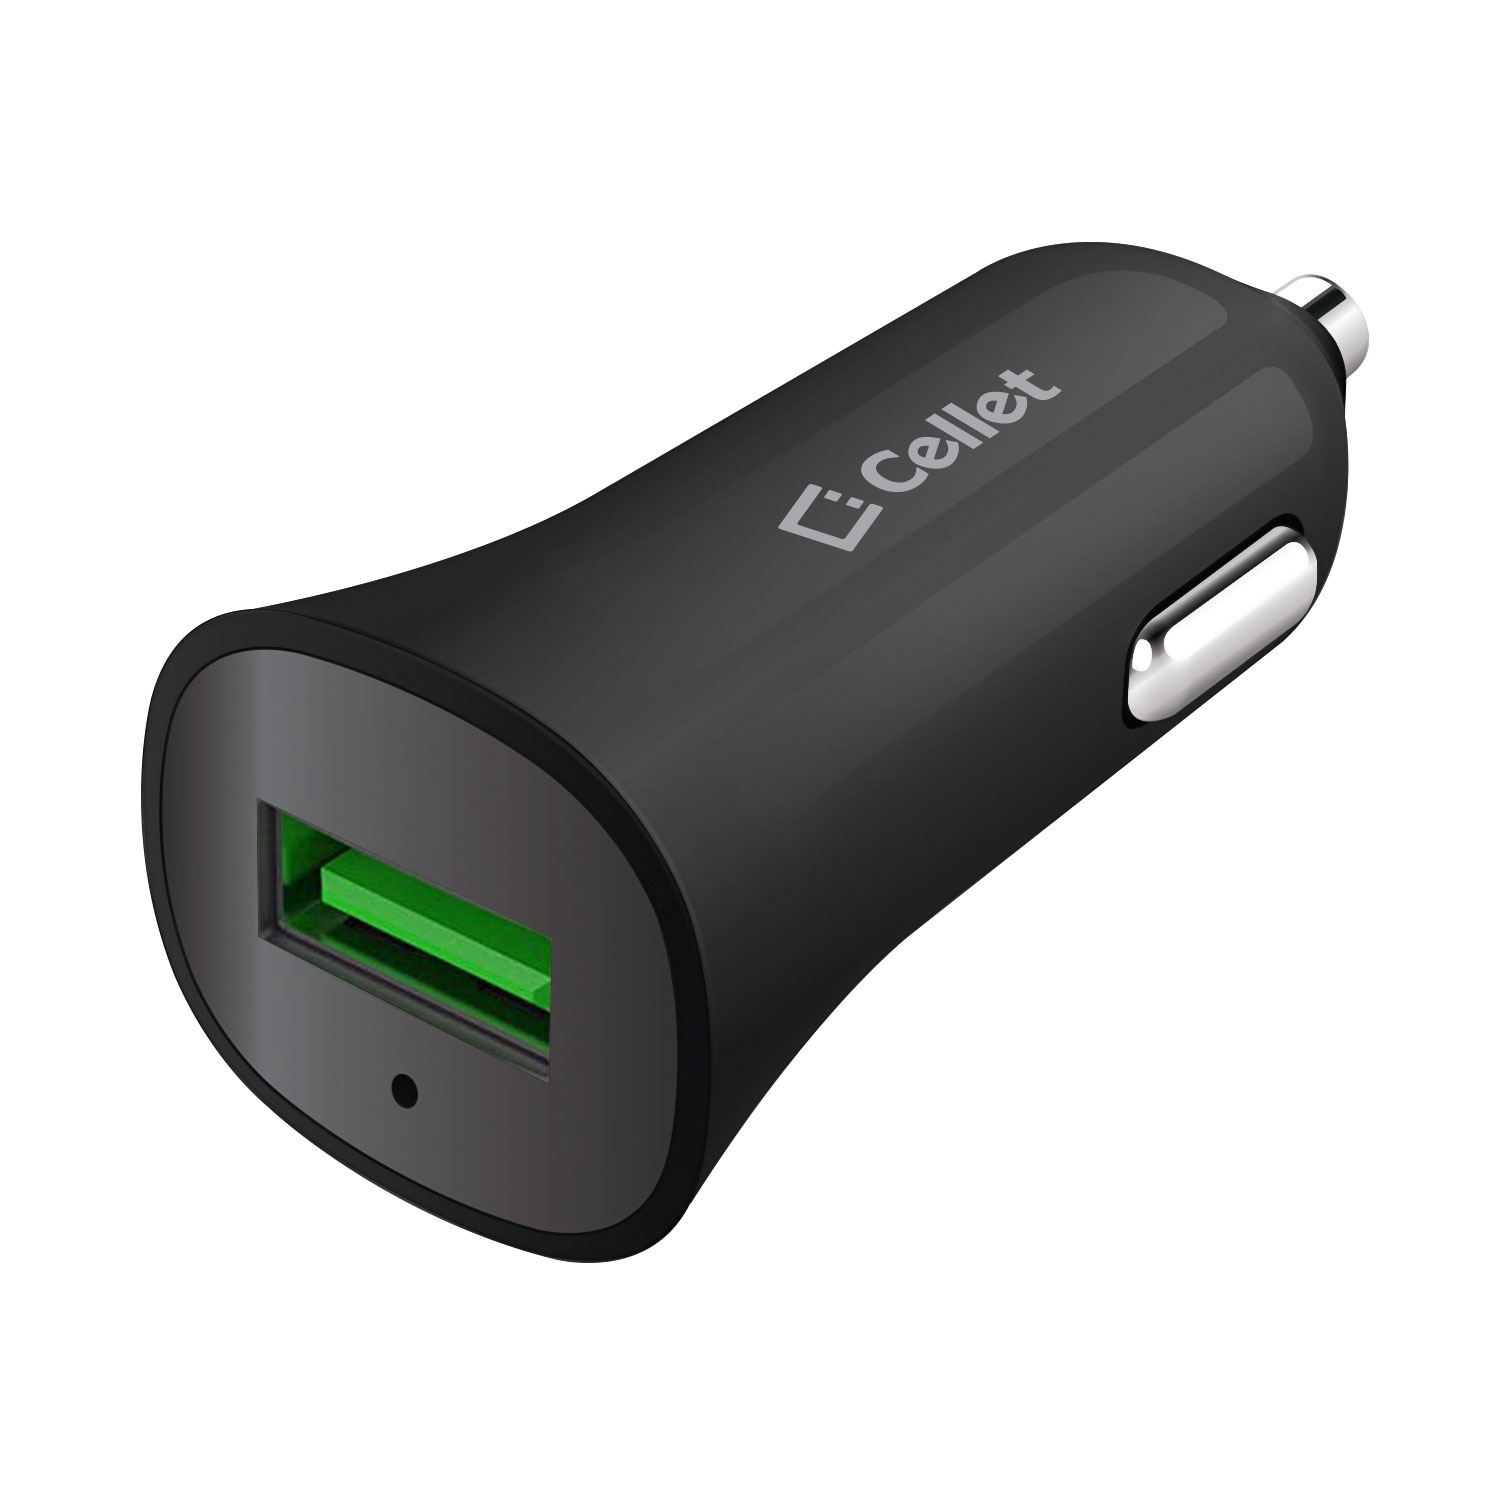 Huawei Union Car Charger Quick Charge 3.0 Black 3.3ft